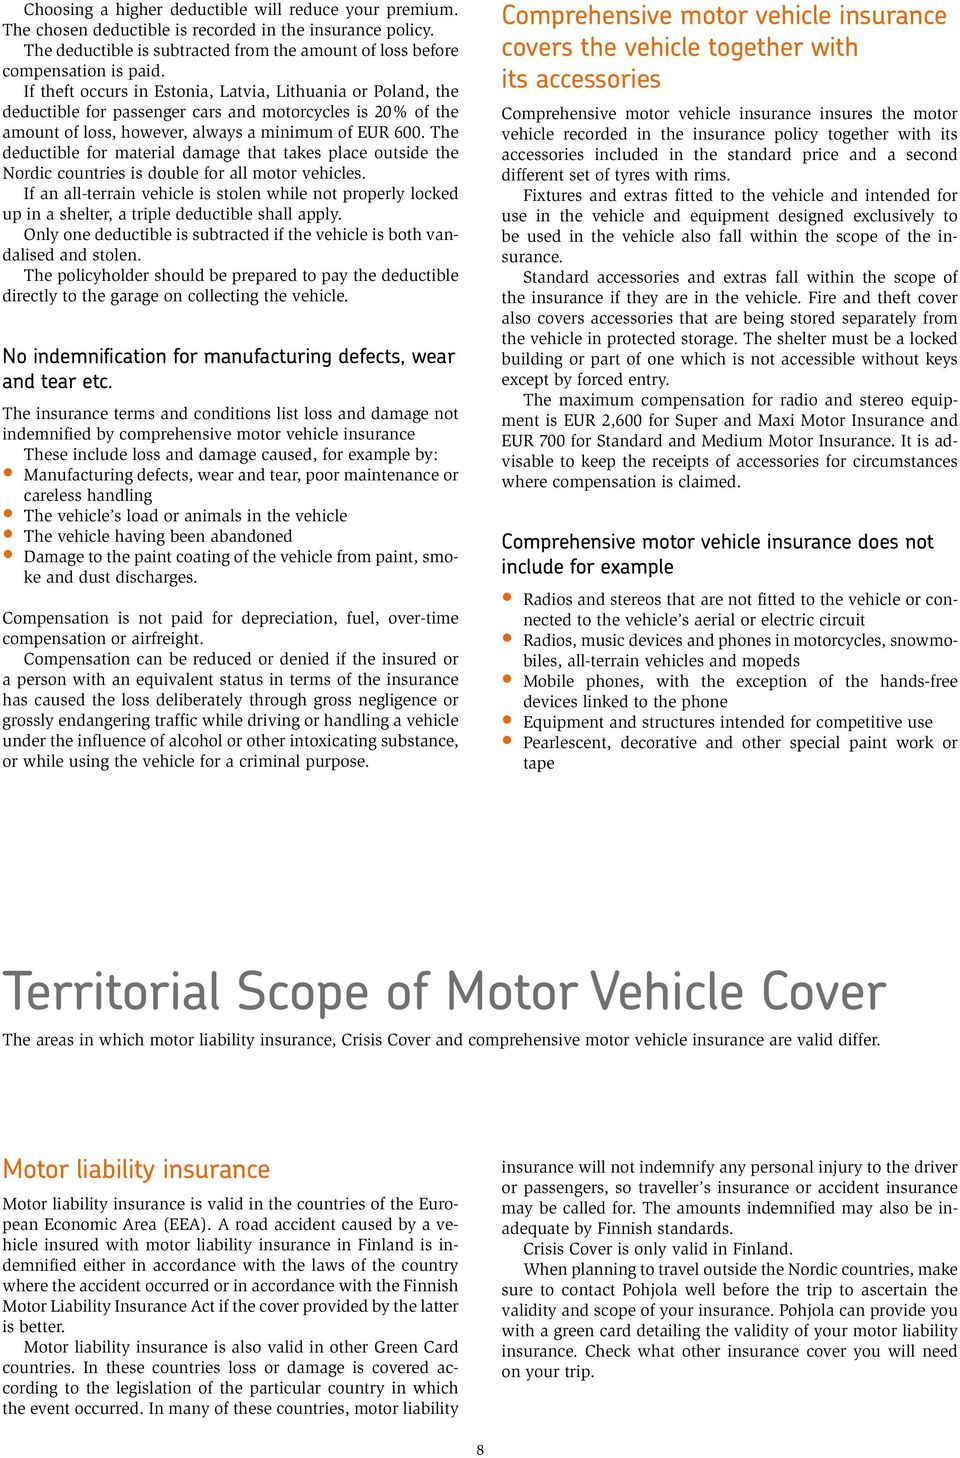 The deductible for material damage that takes place outside the Nordic countries is double for all motor vehicles.